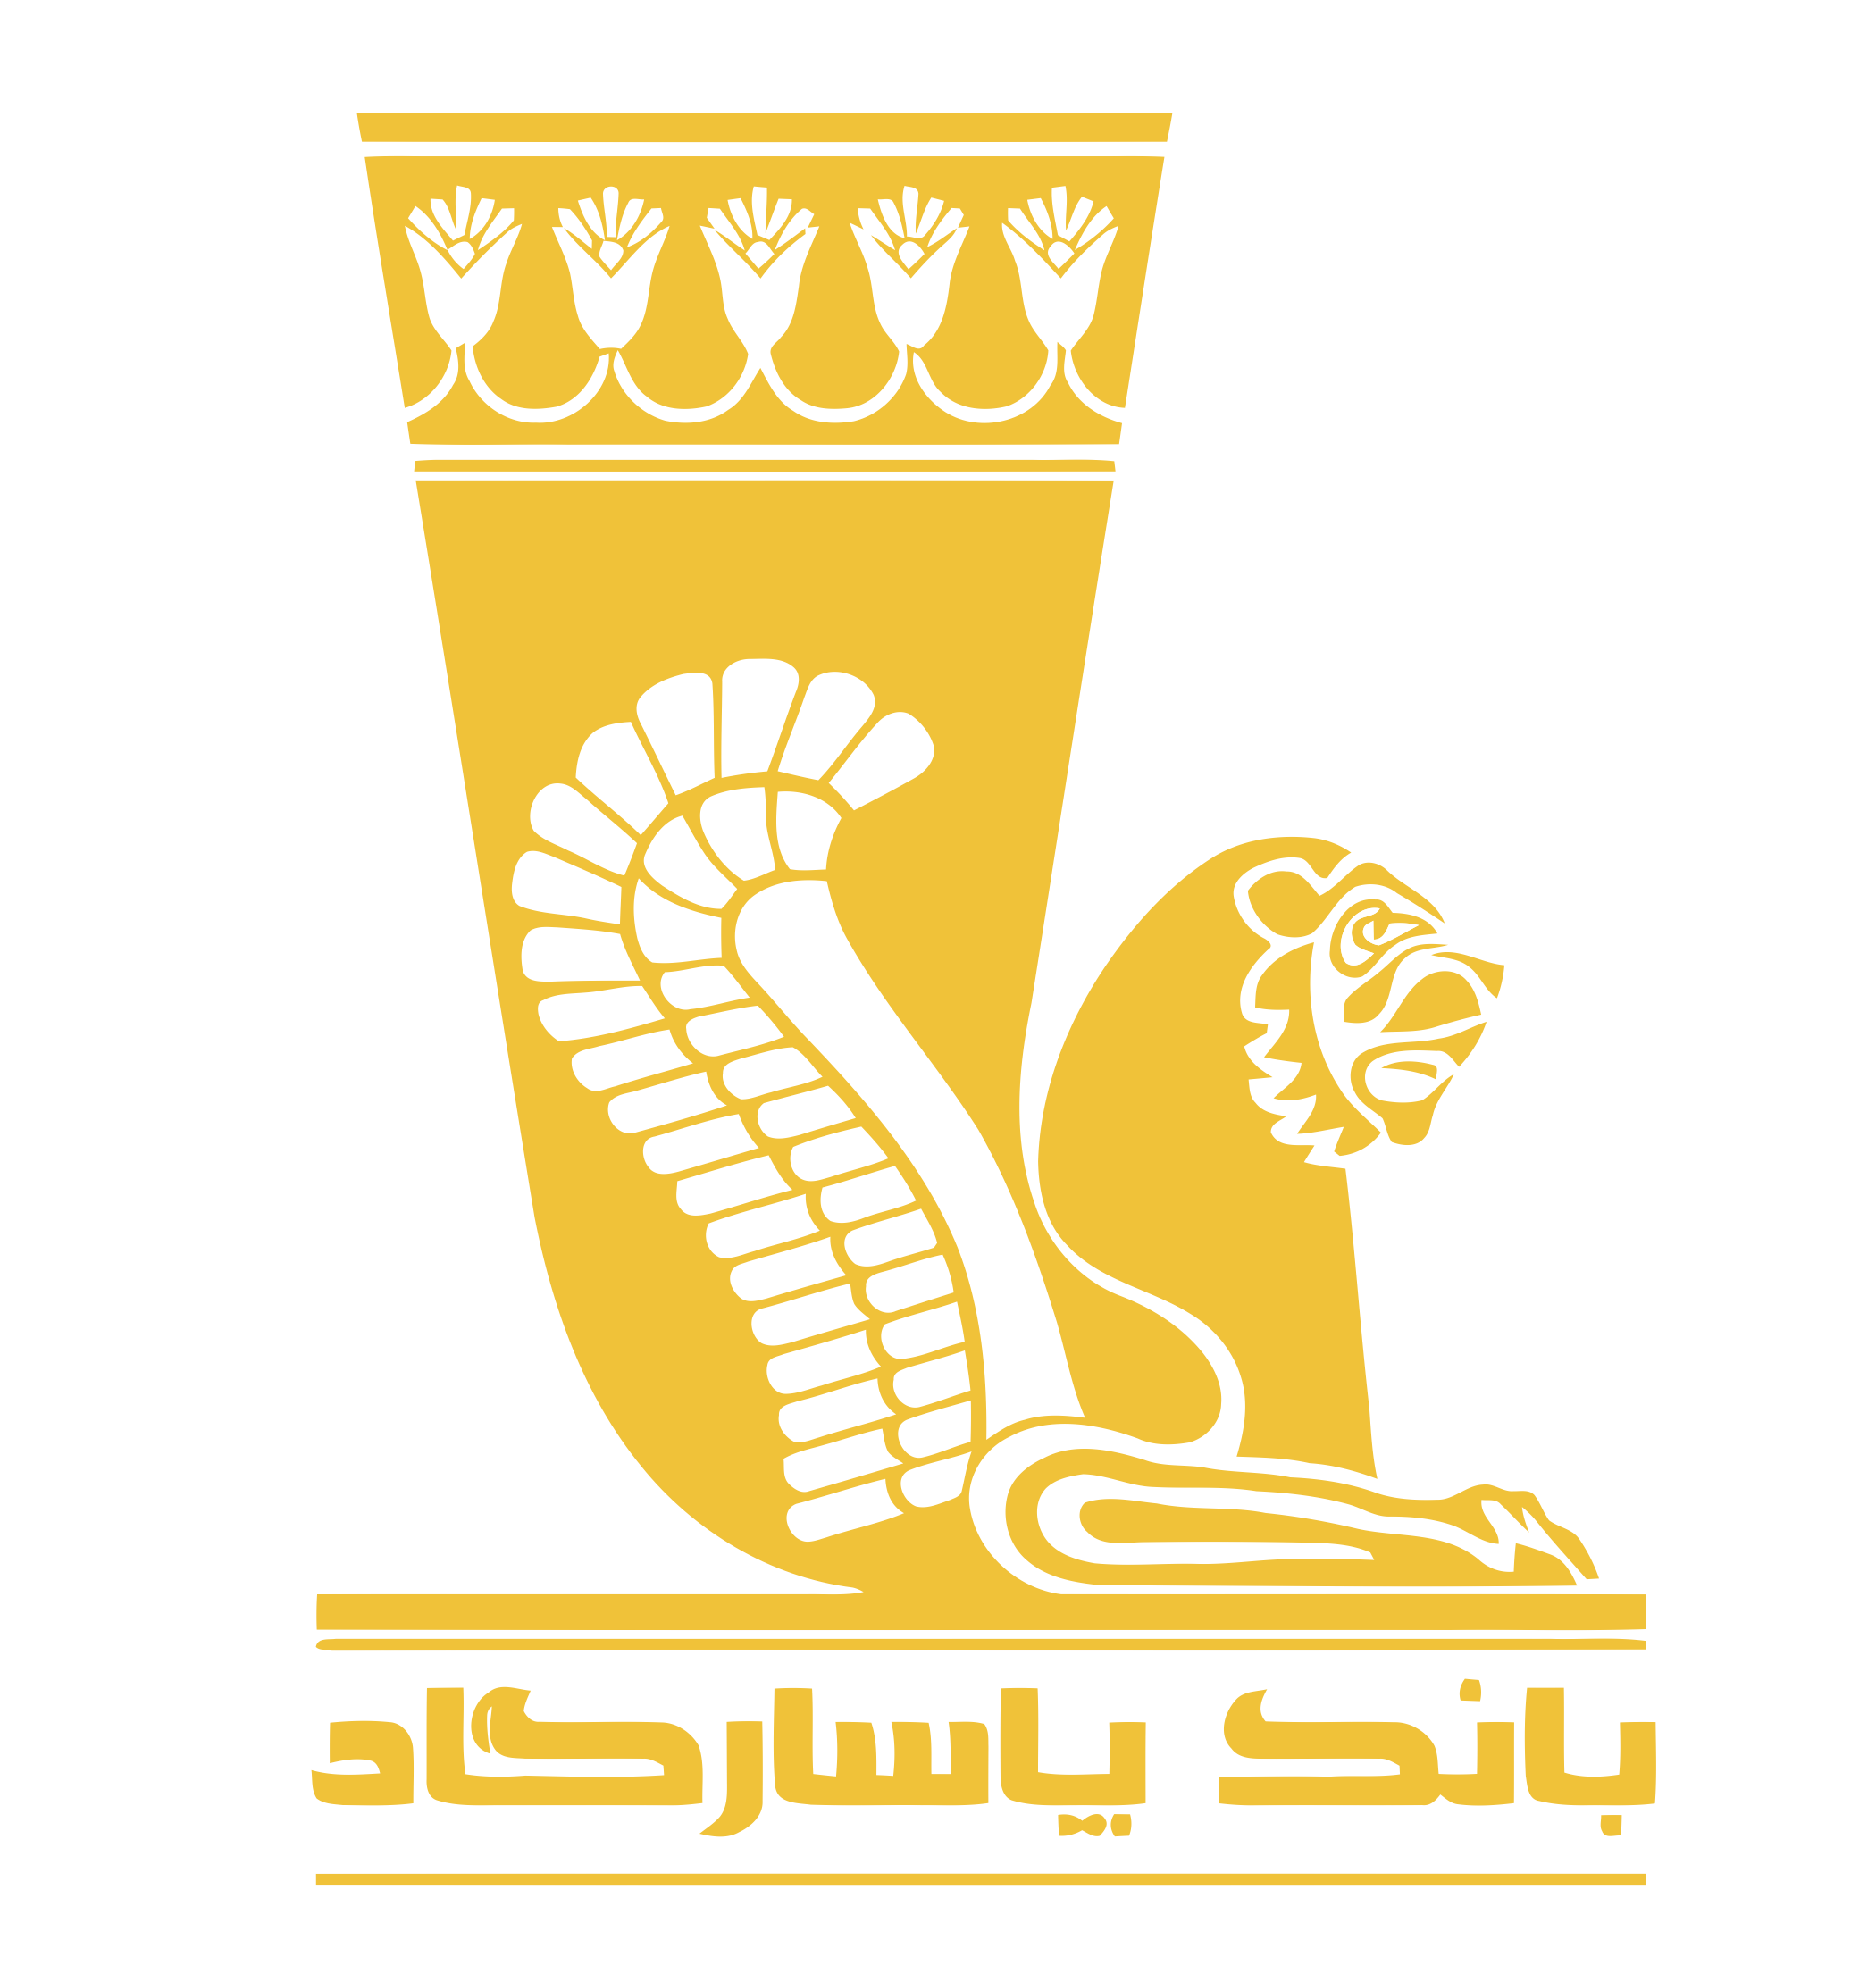 Pasargad-logo-LimooGraphic